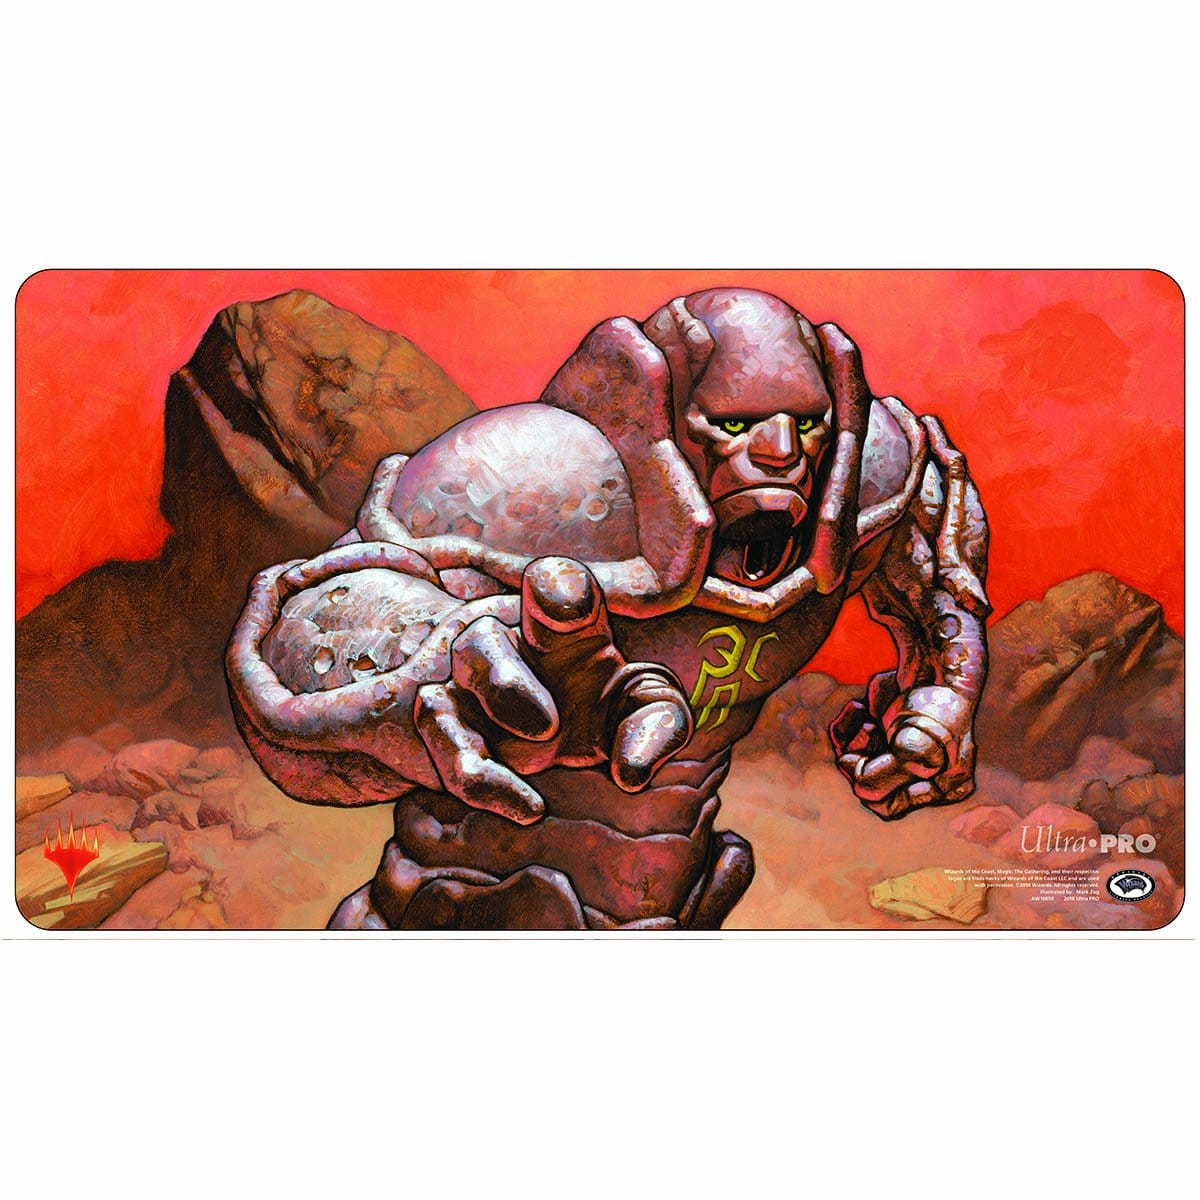 Karn, Silver Golem Playmat - Playmat - Original Magic Art - Accessories for Magic the Gathering and other card games